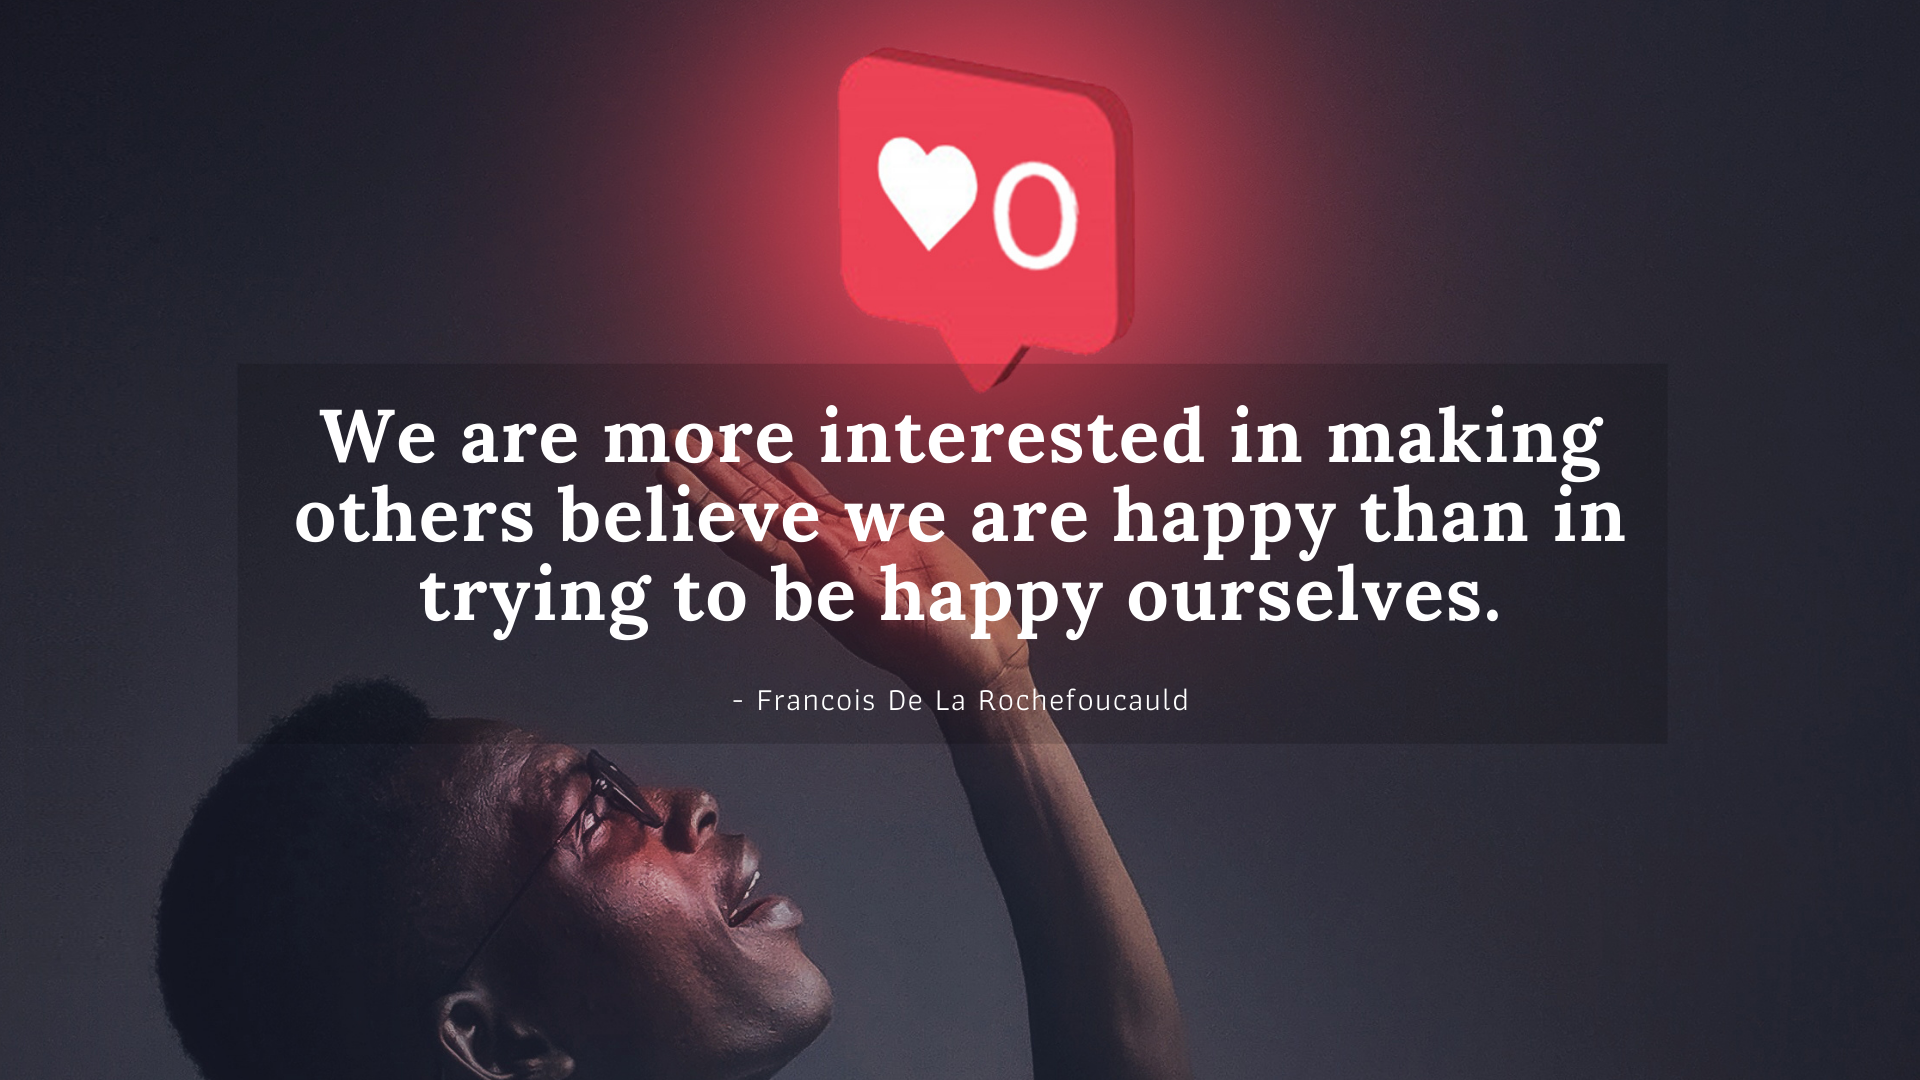 We are more interested in making others believe we are happy than in trying to be happy ourselves.- Francois De La Rochefoucauld[1920×1080]